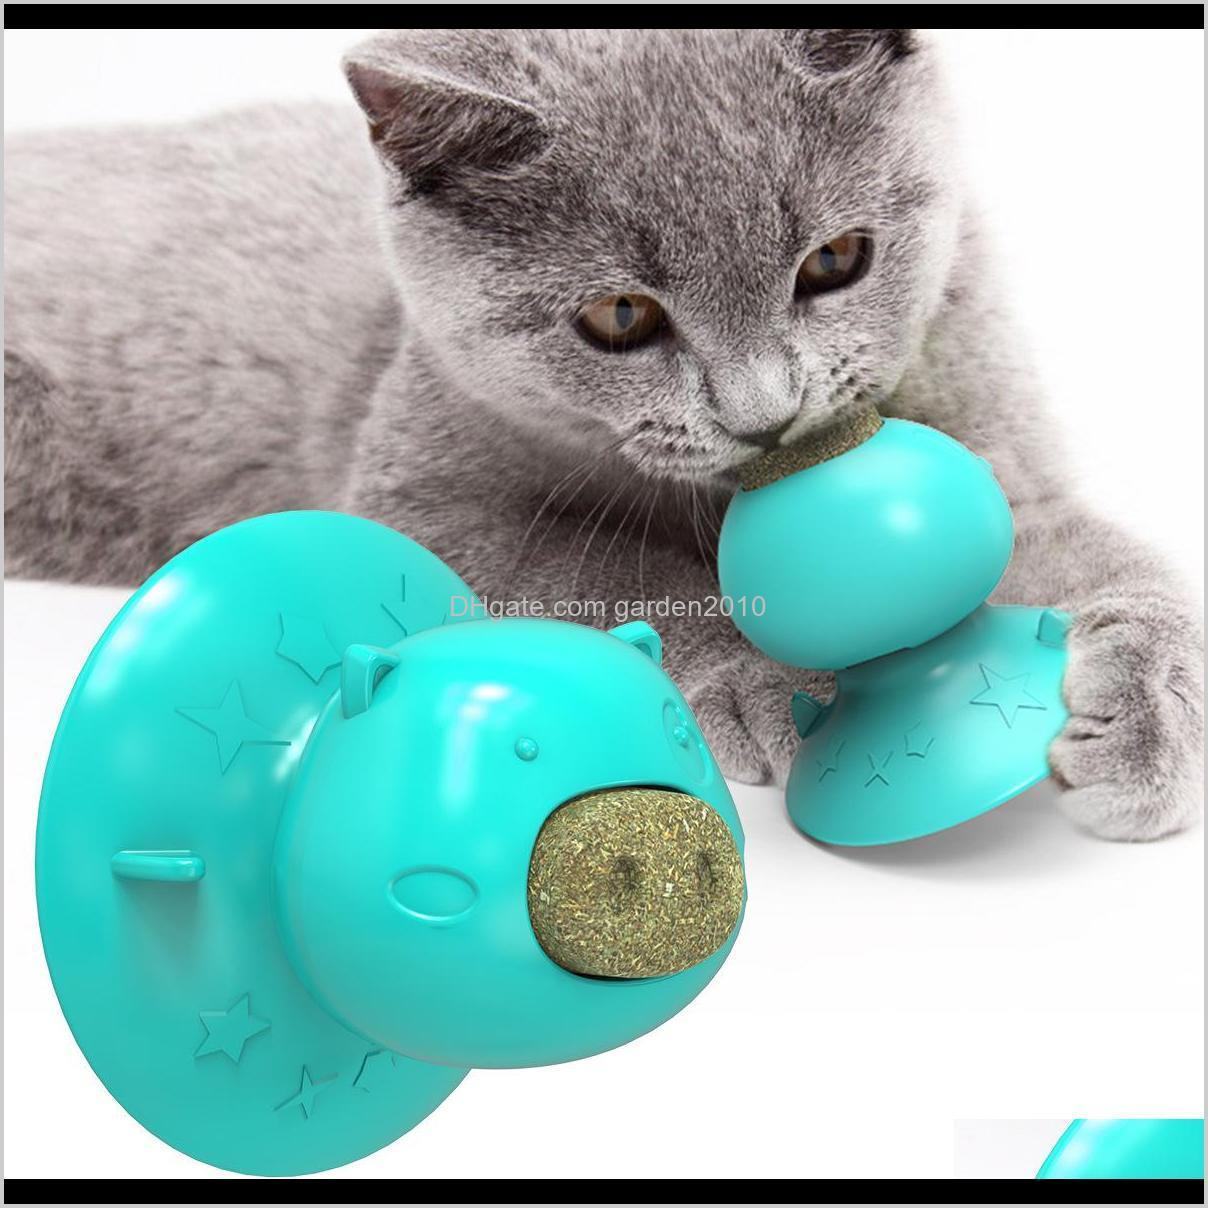 Multi Lick Odontoprisis Mint Licking Molar Suction Cup Resistance To Bite Cat Toys Chews Dog Pet Supplies Ha286 7Ogmt Zloda